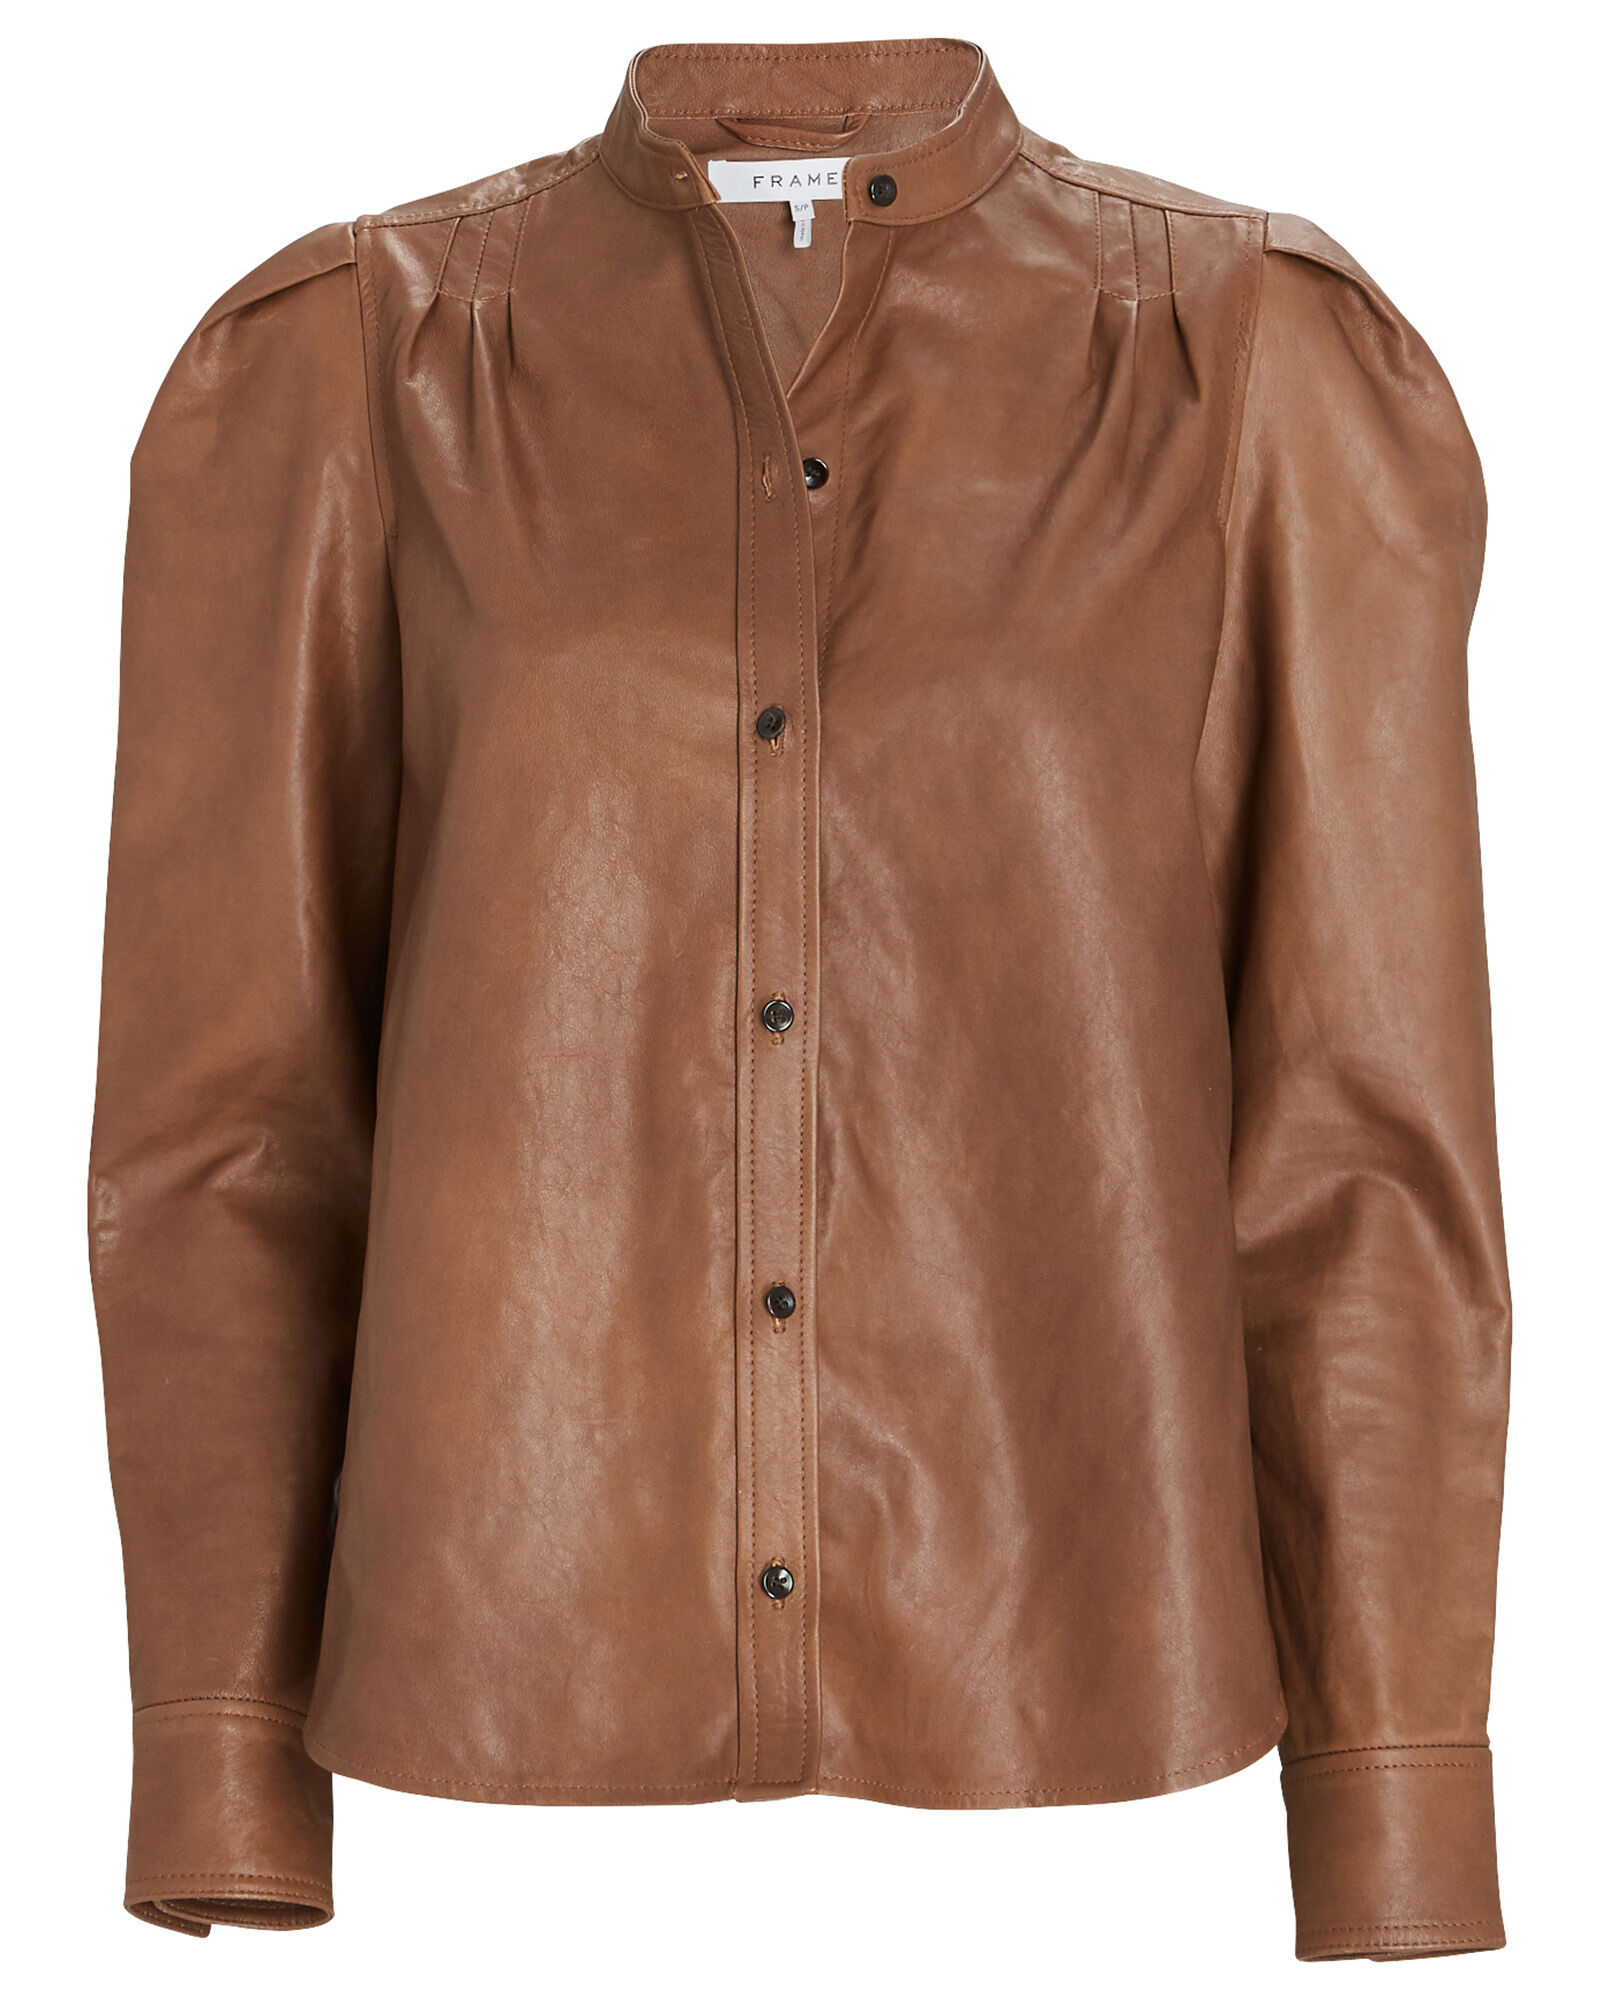 Charlie Puff Sleeve Leather Shirt, BROWN, hi-res